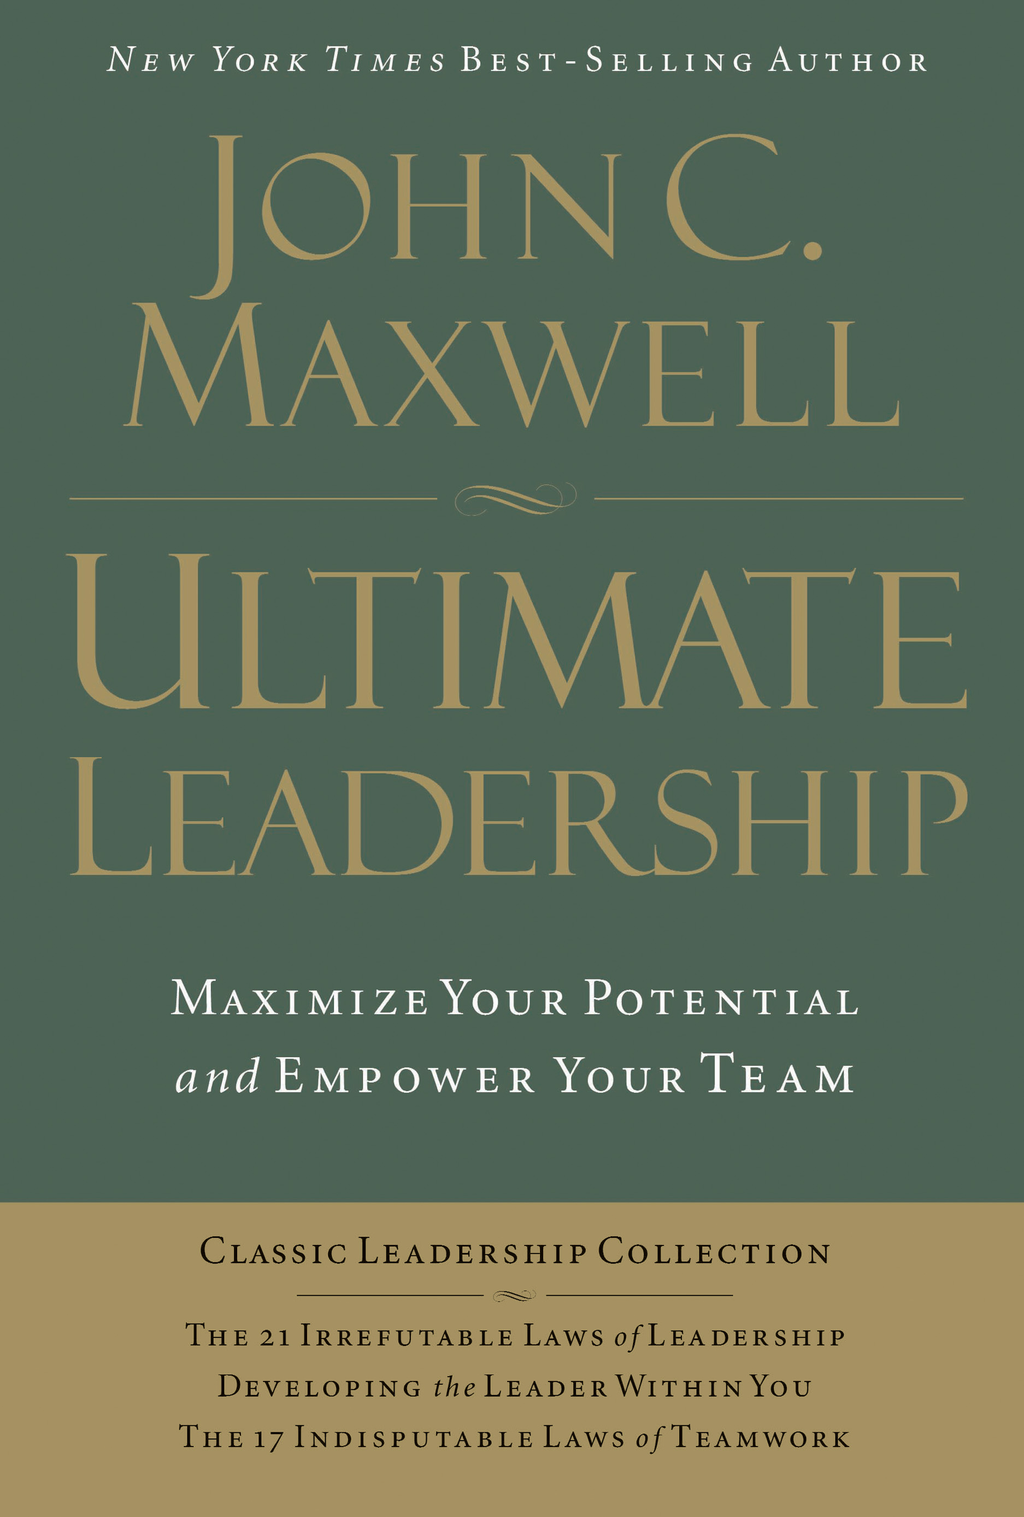 Ultimate Leadership: 21 Irrefutable Laws, Developing the Leader Within You, 17 Indisputable Laws of Teamwork By: John Maxwell